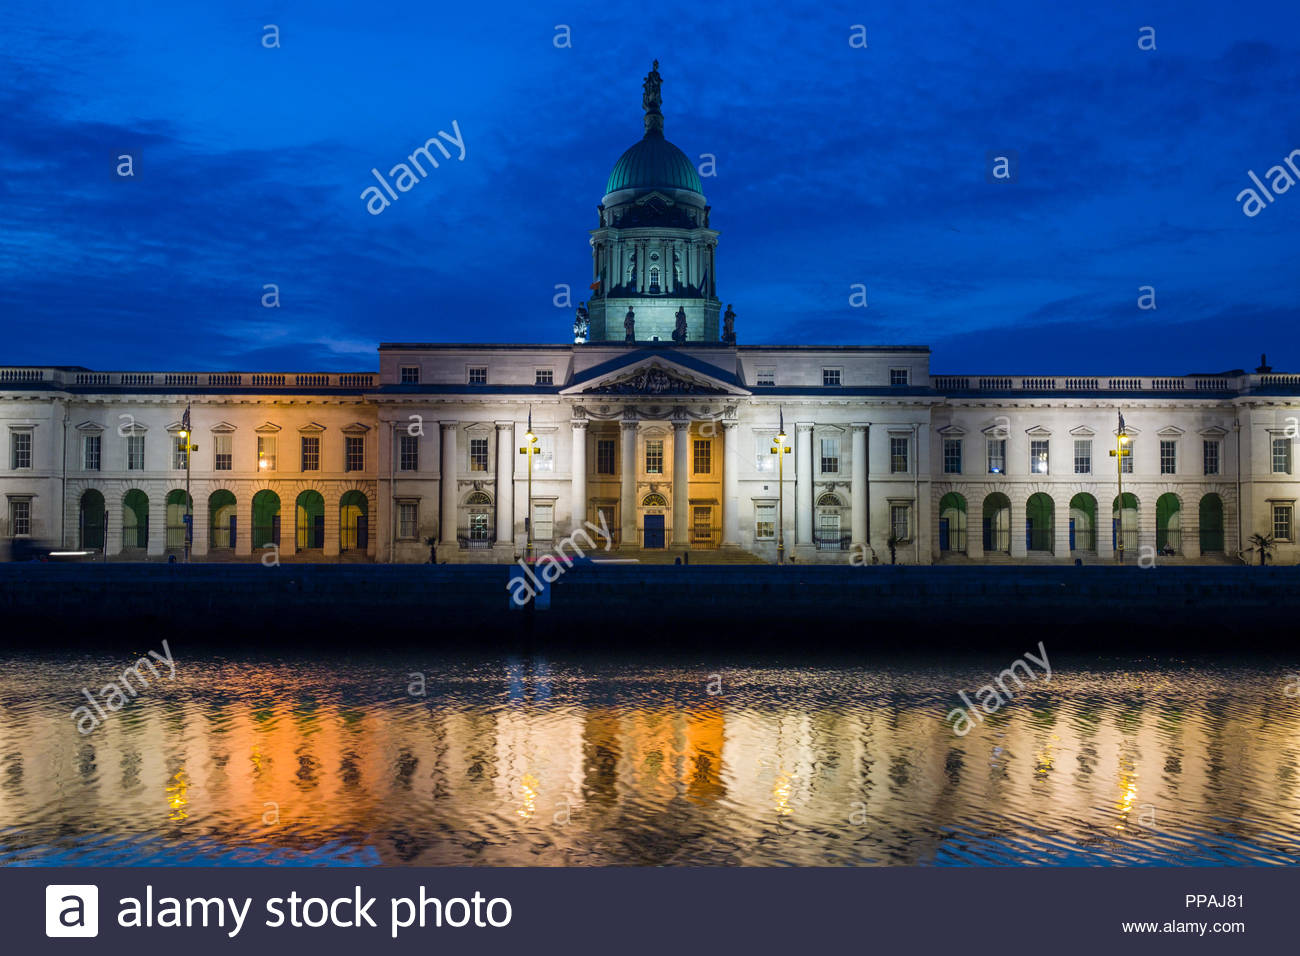 The Custom House at night reflecting in the River Liffey, The building is a masterpiece of European neo-classicism architecture, North Dock, Dublin, L - Stock Image